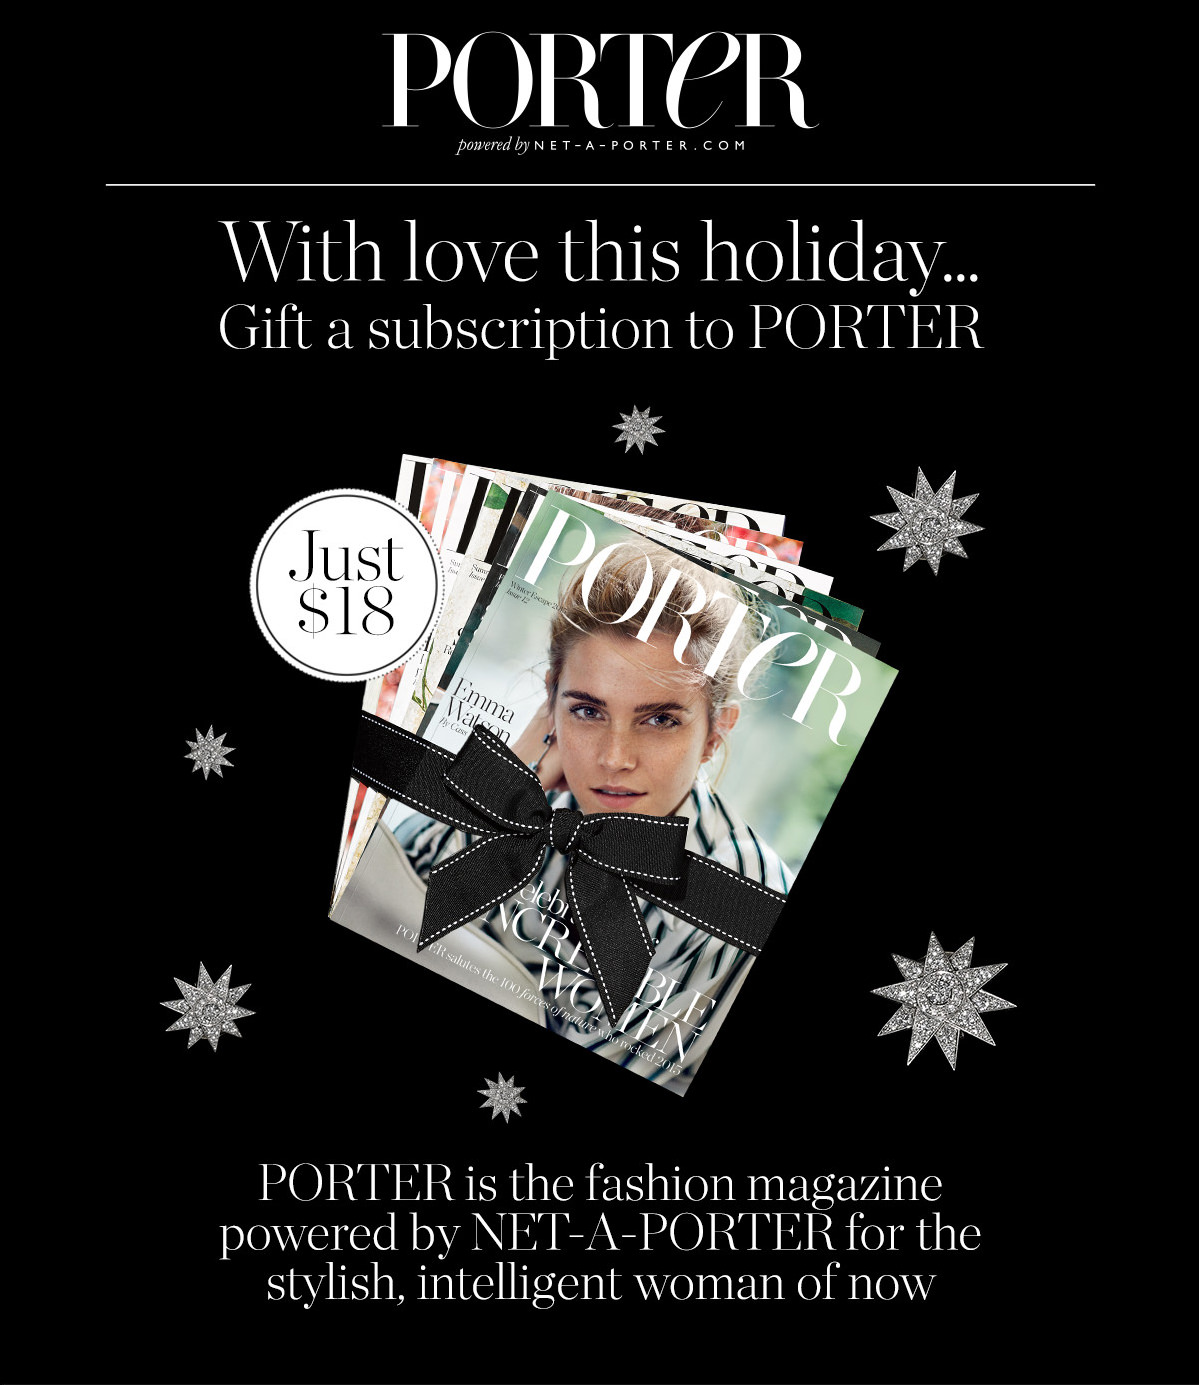 62c504d285ad91 Net-A-Porter  With love this holiday… gift a PORTER subscription ...